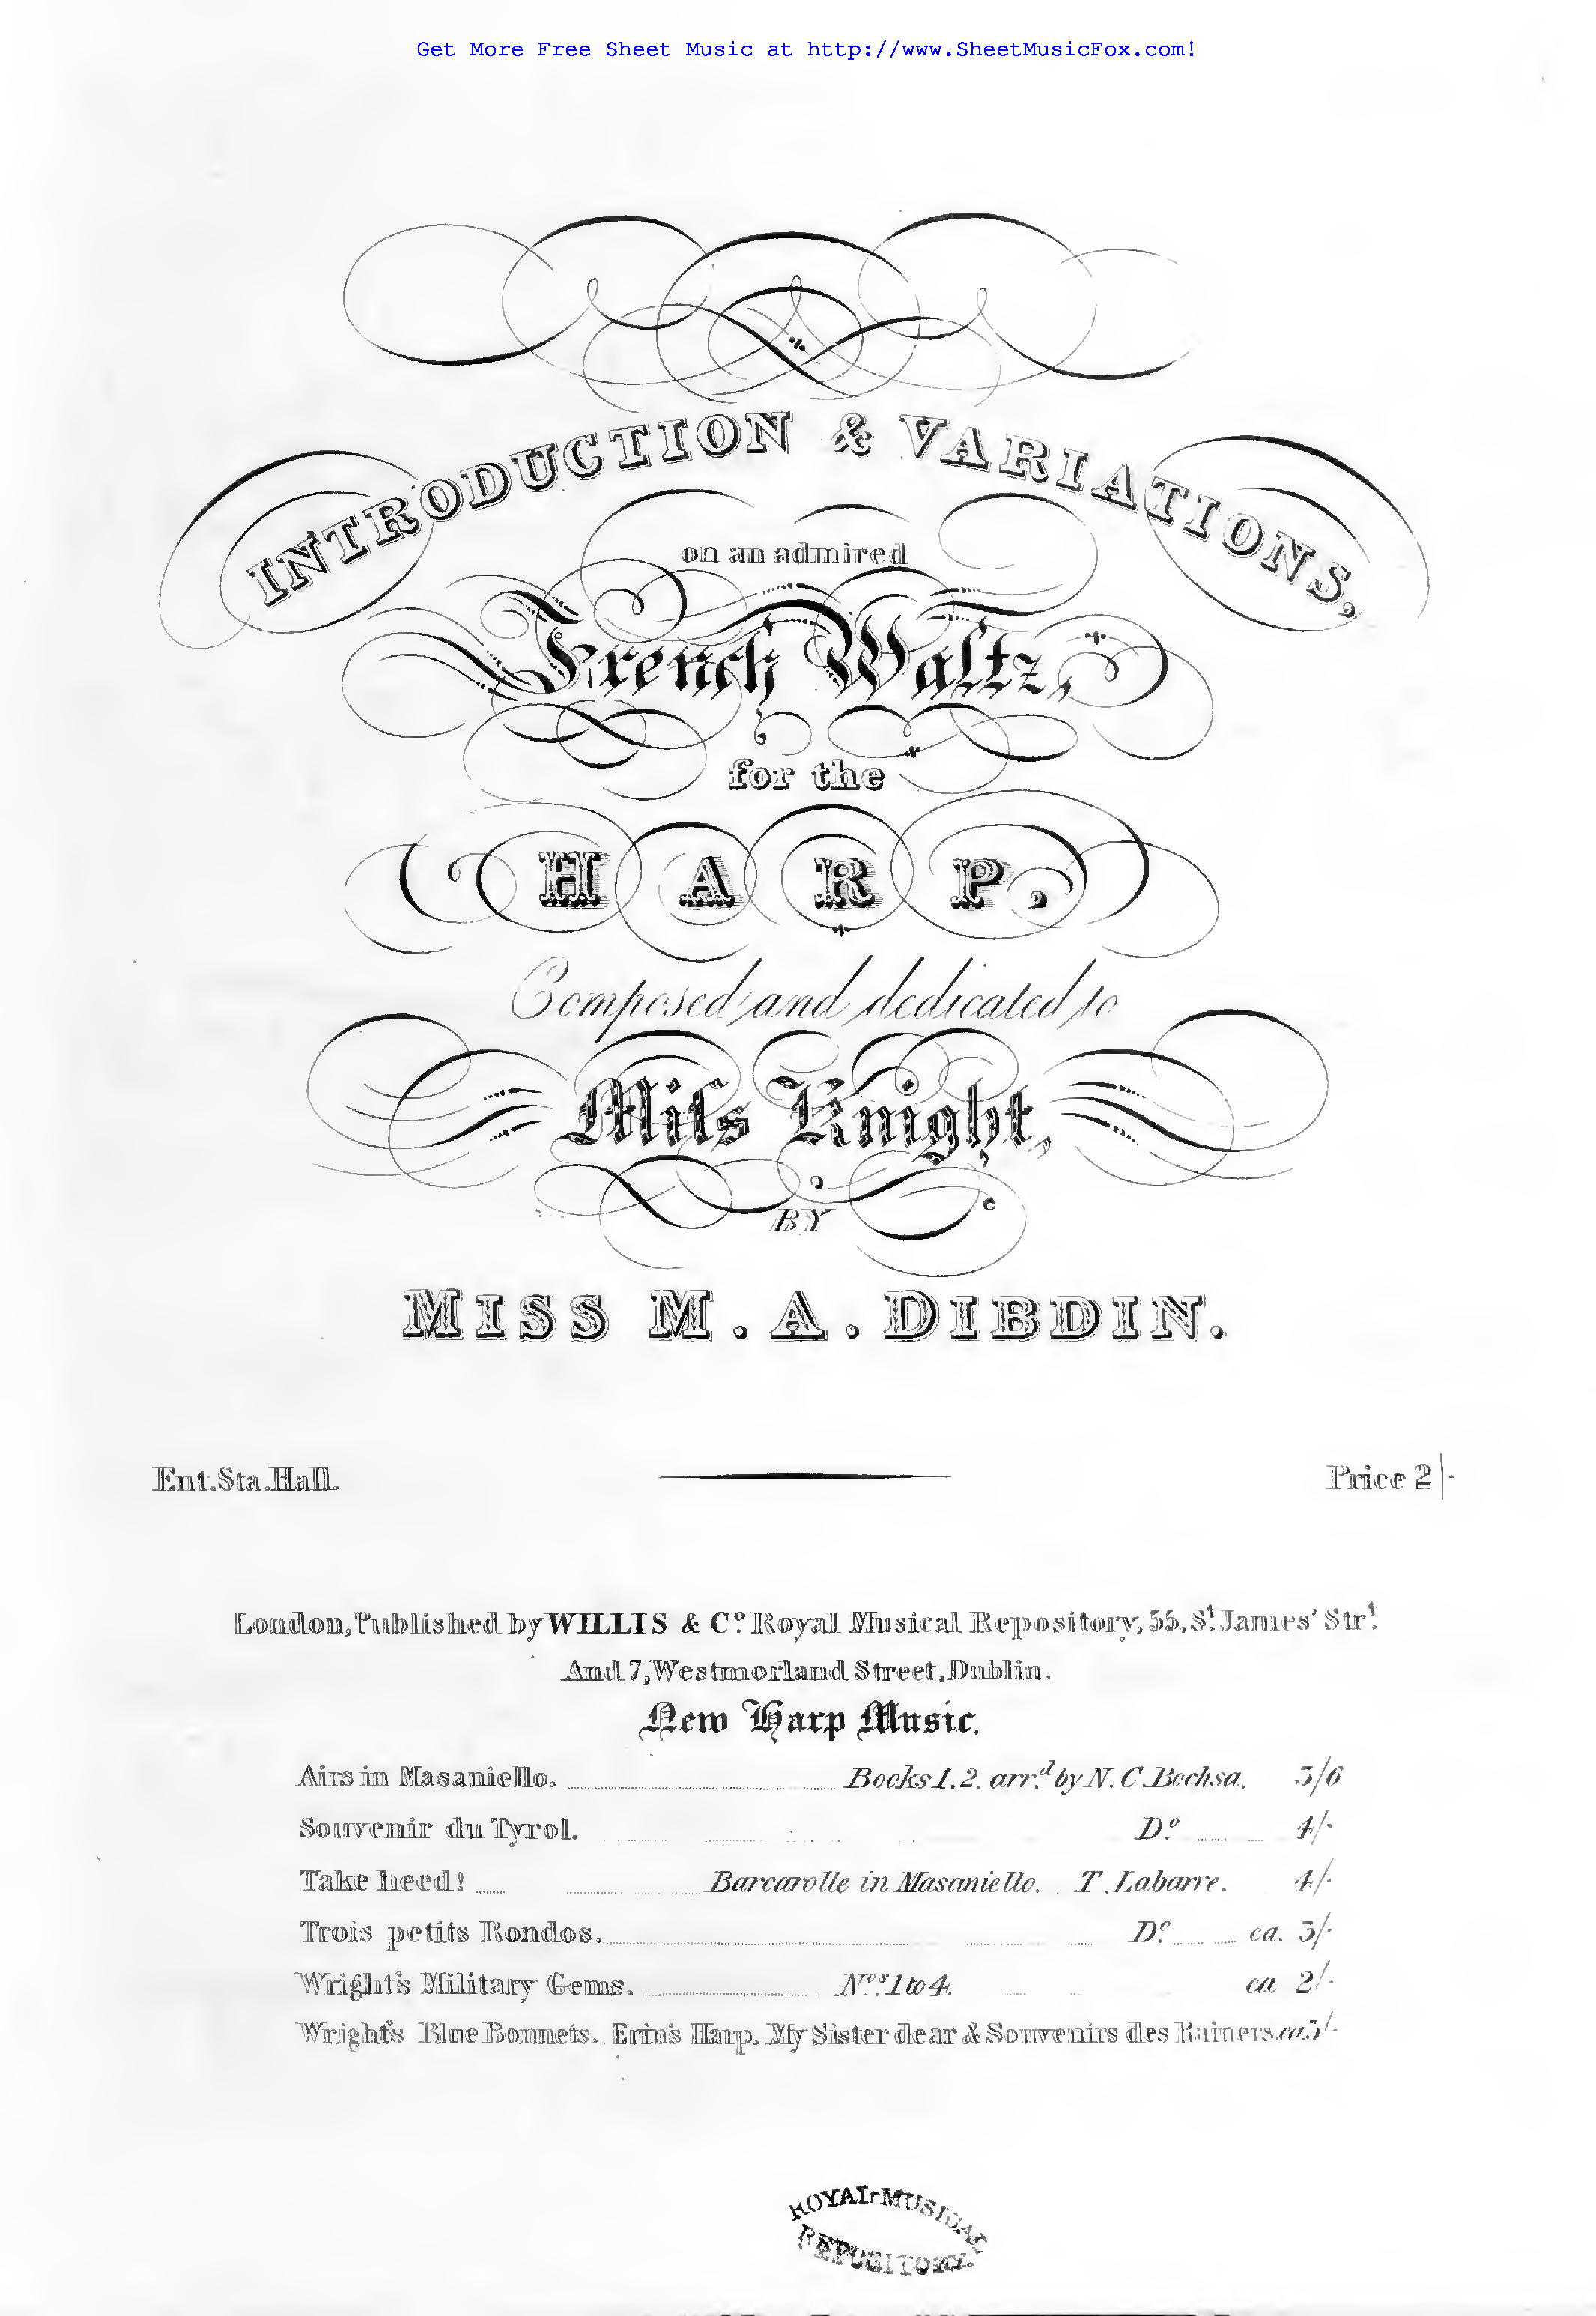 Free sheet music for Introduction and Variations on a